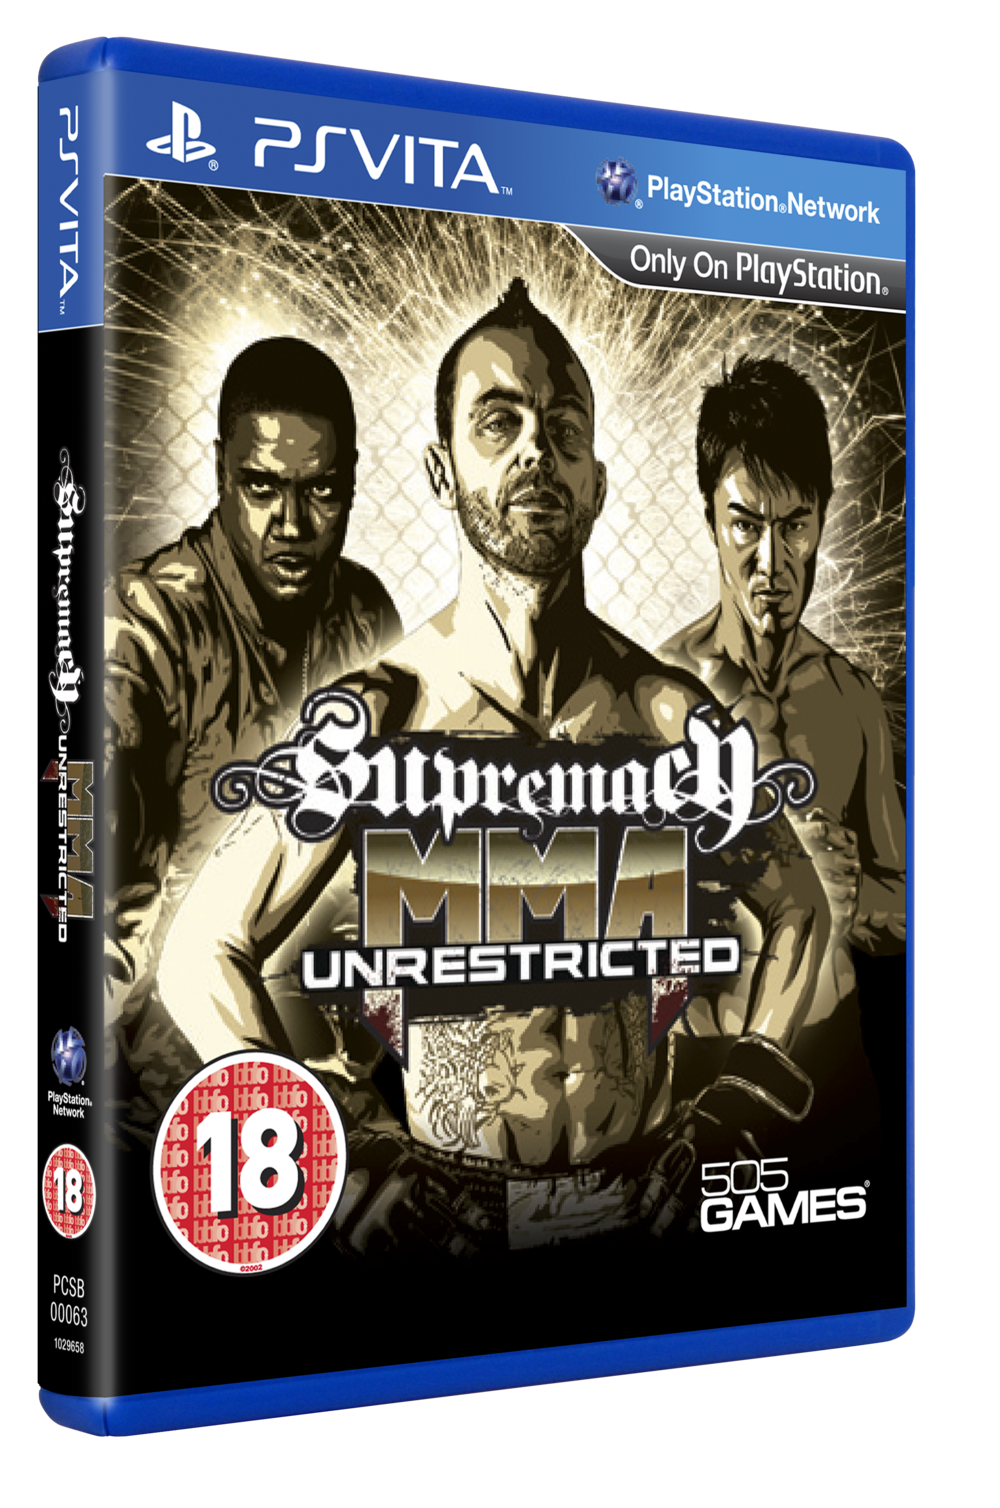 1116_Supremacy-VITA-3Dpackshot_UK.png